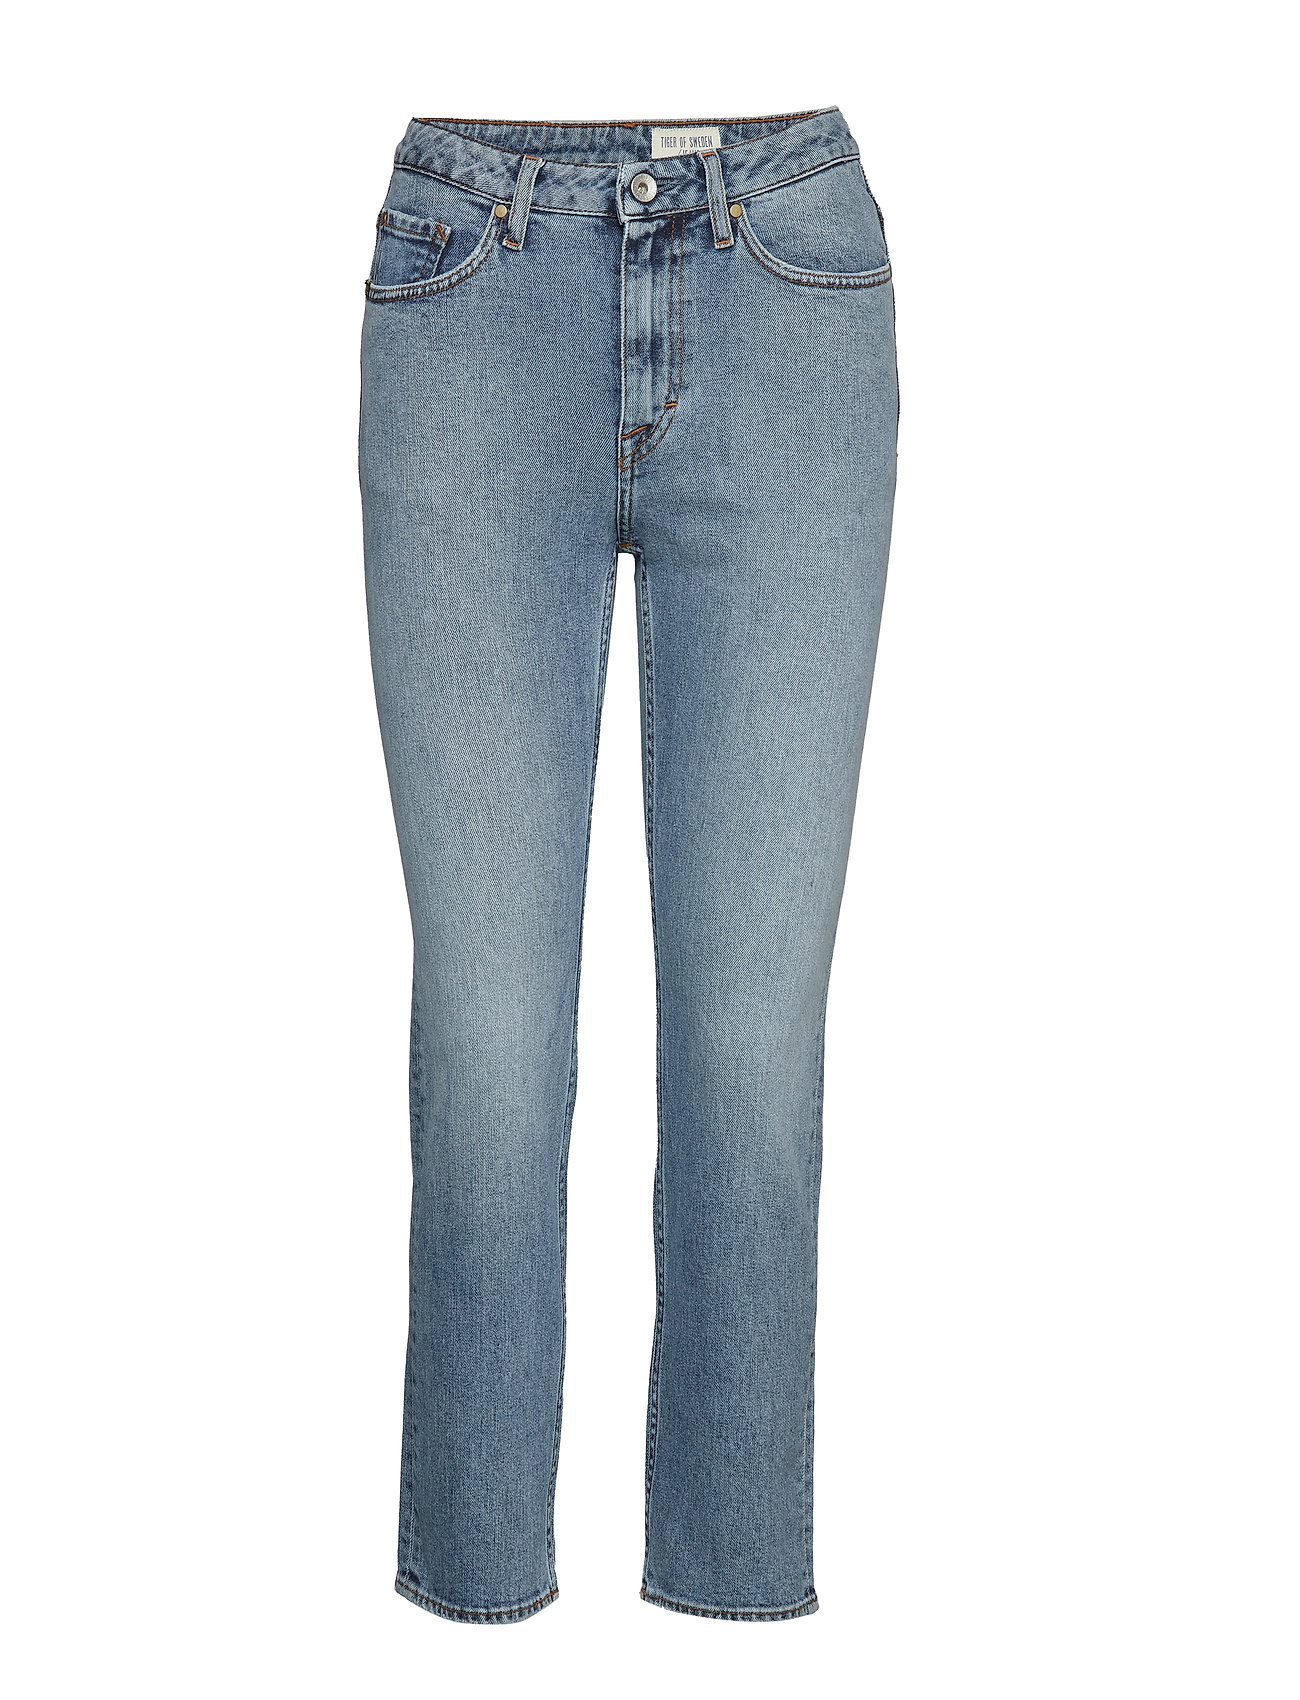 Tiger of Sweden Jeans MEG - LIGHT BLUE